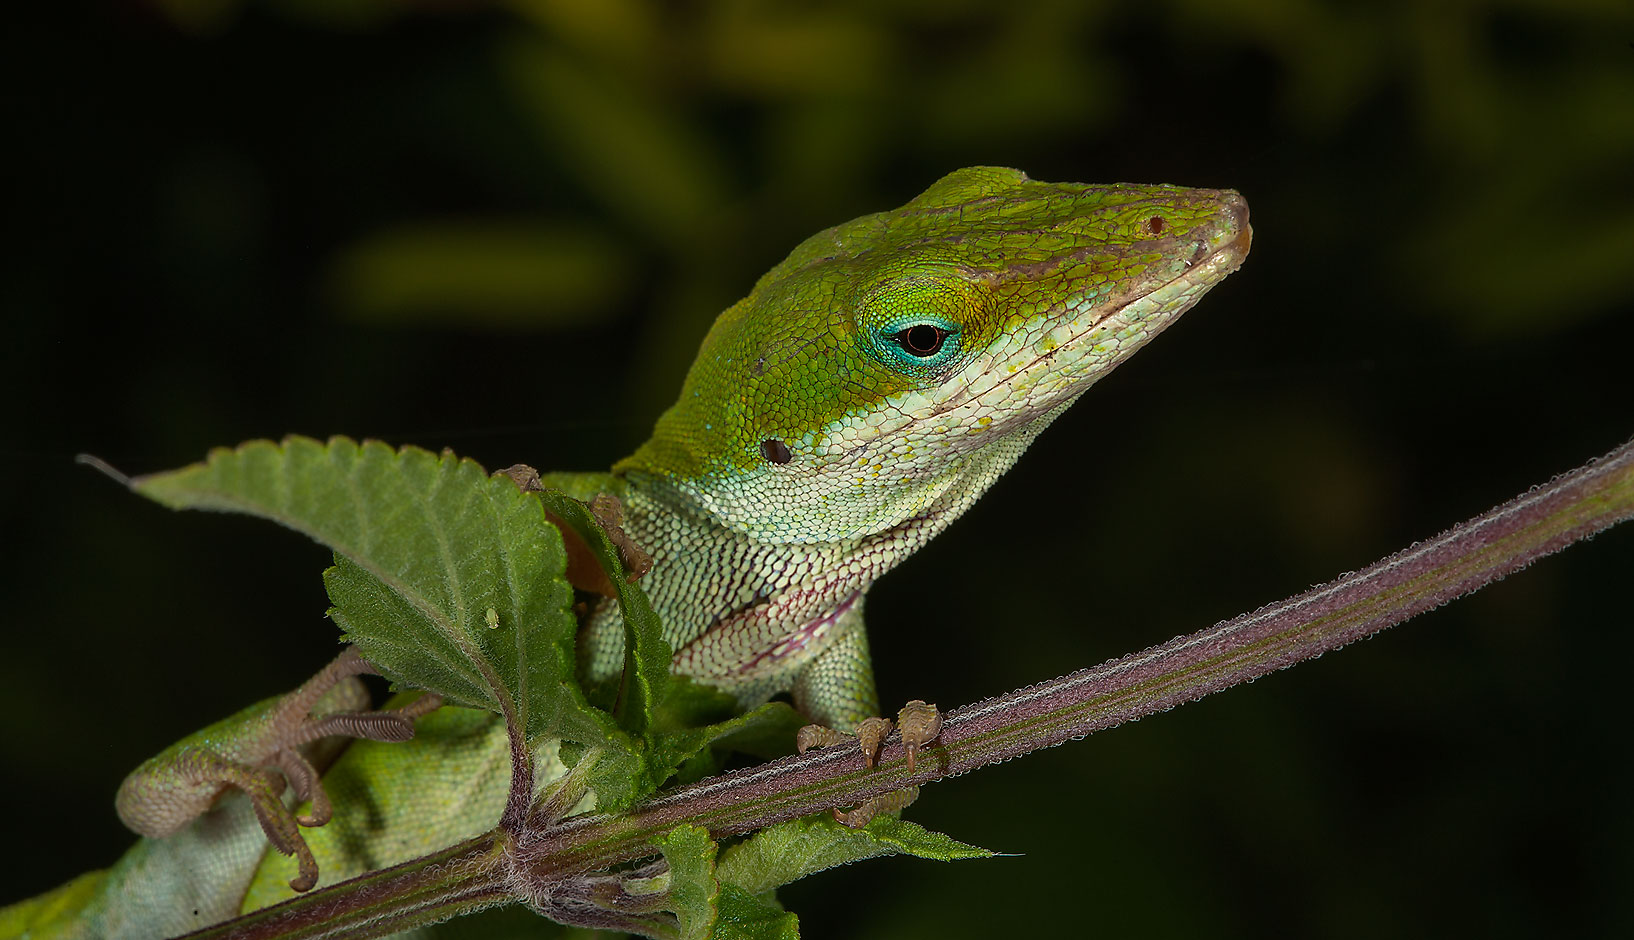 Green anole lizard in Antique Rose Emporium. Independence, Texas